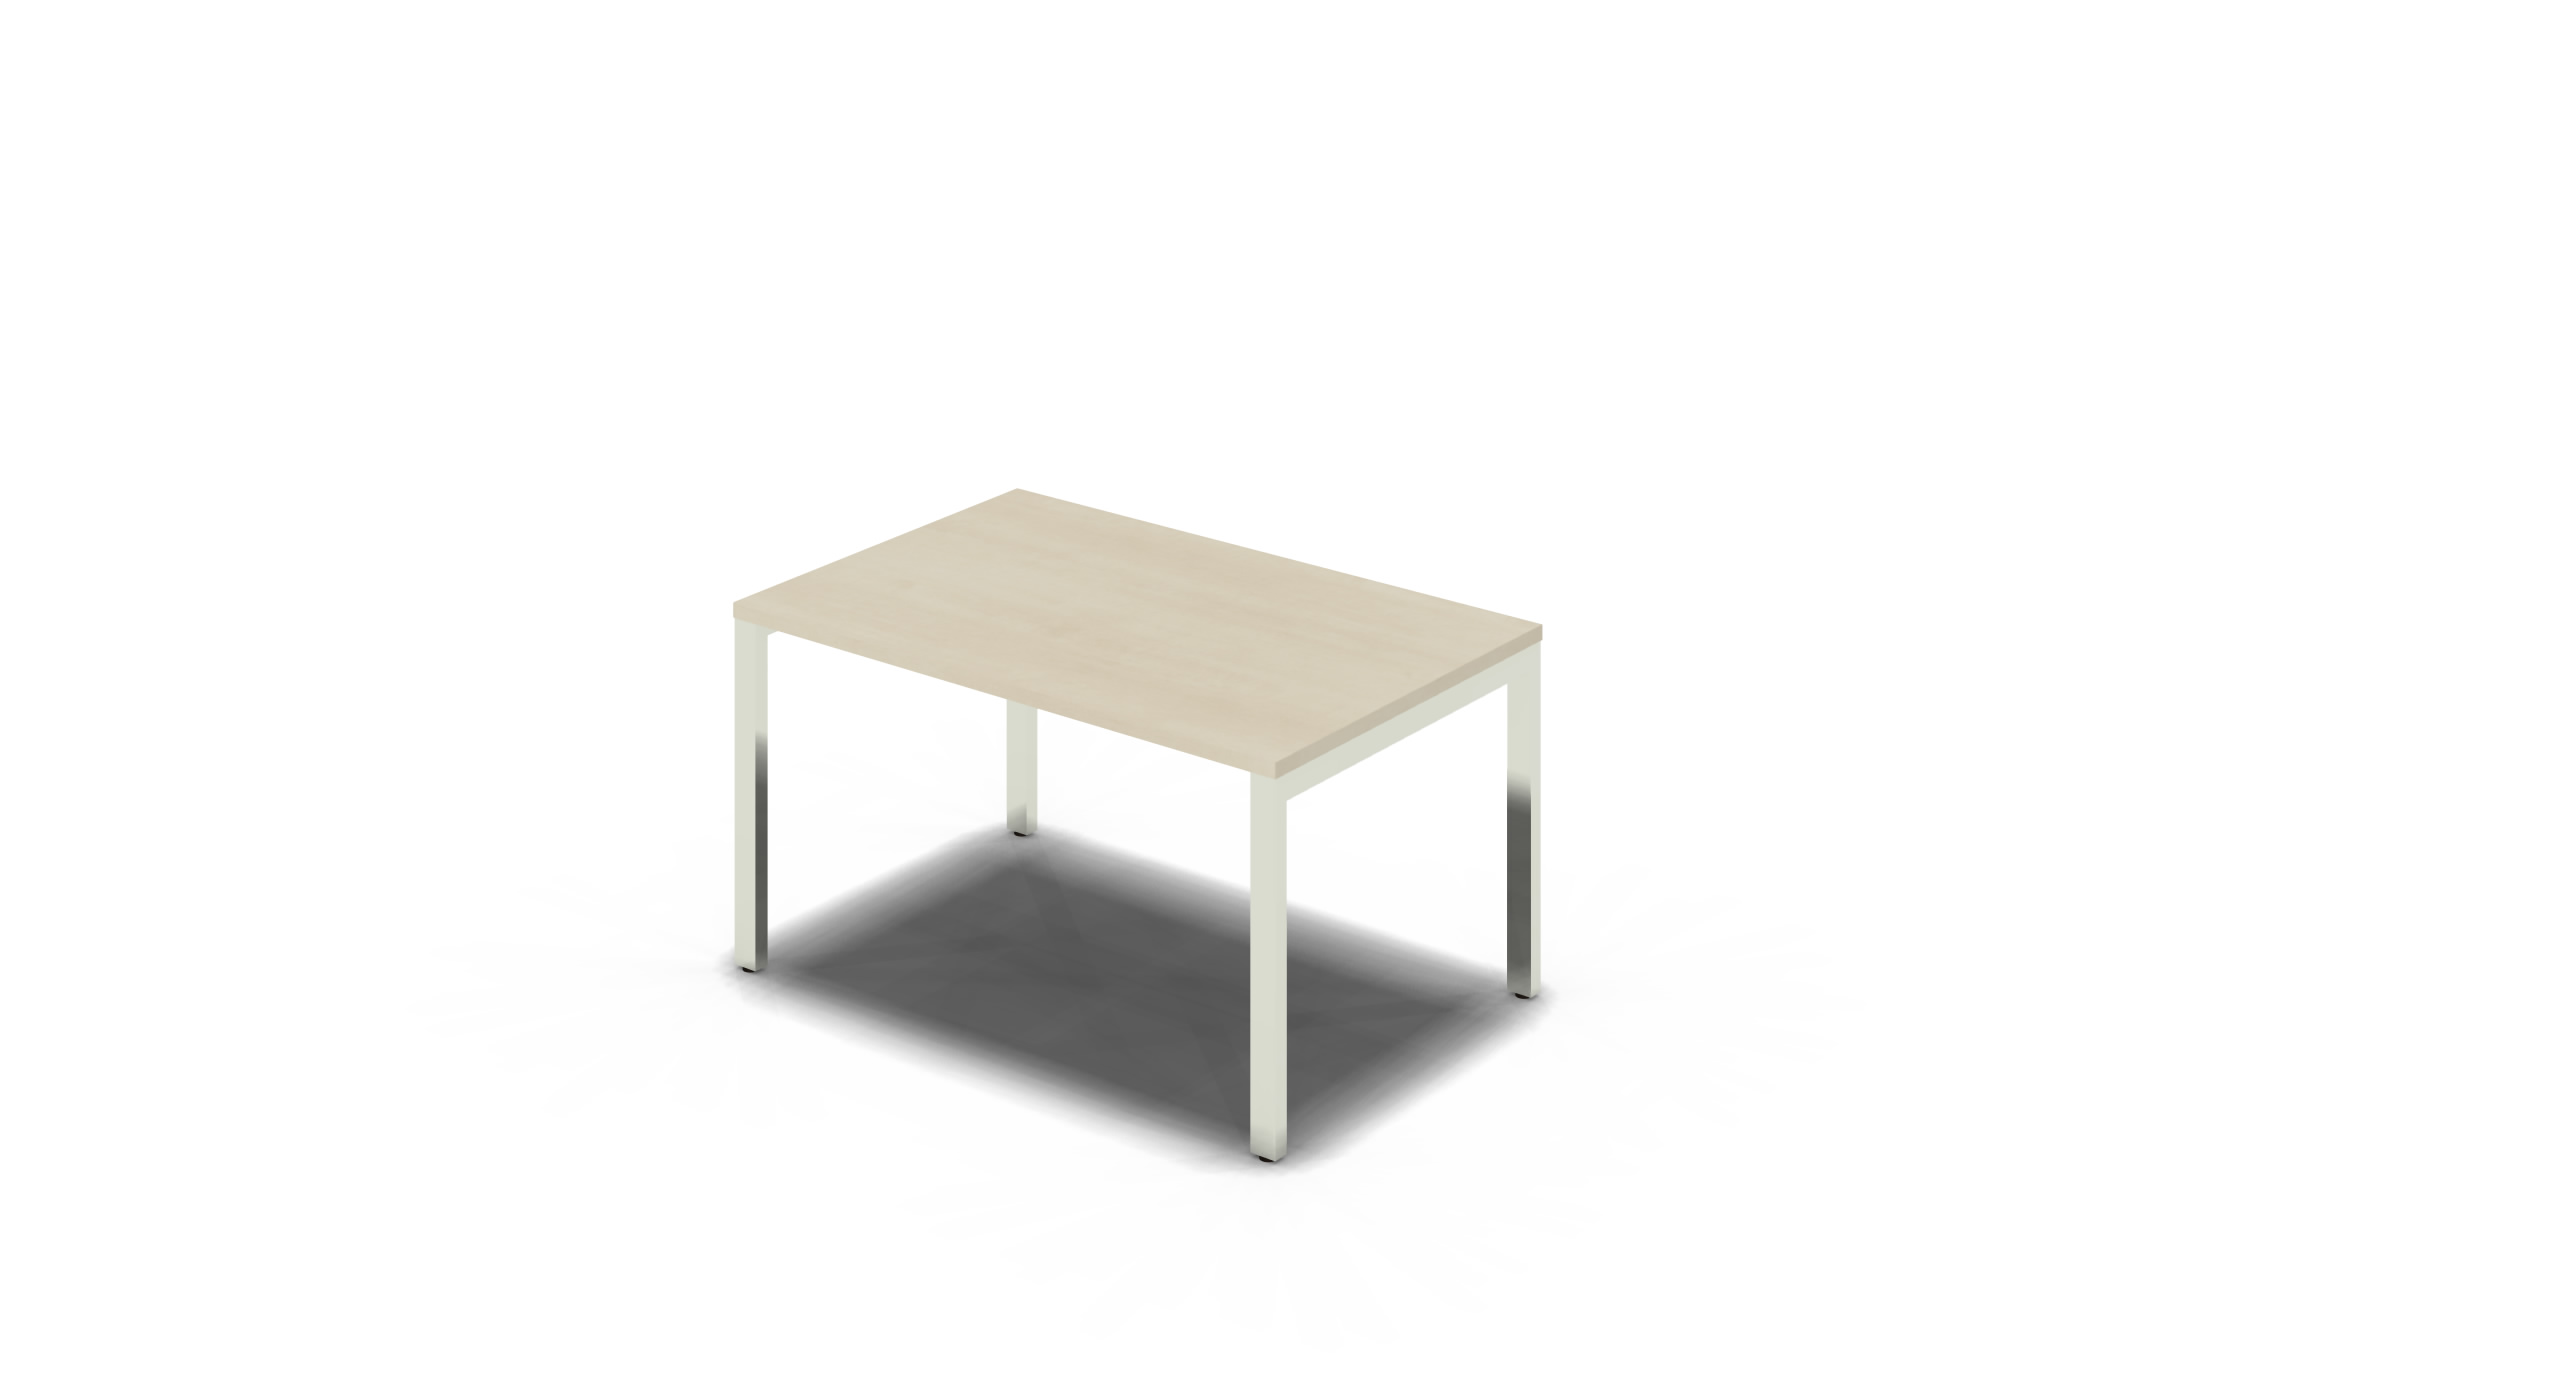 Table_Square_1200x750_Chrome_Maple_noOption